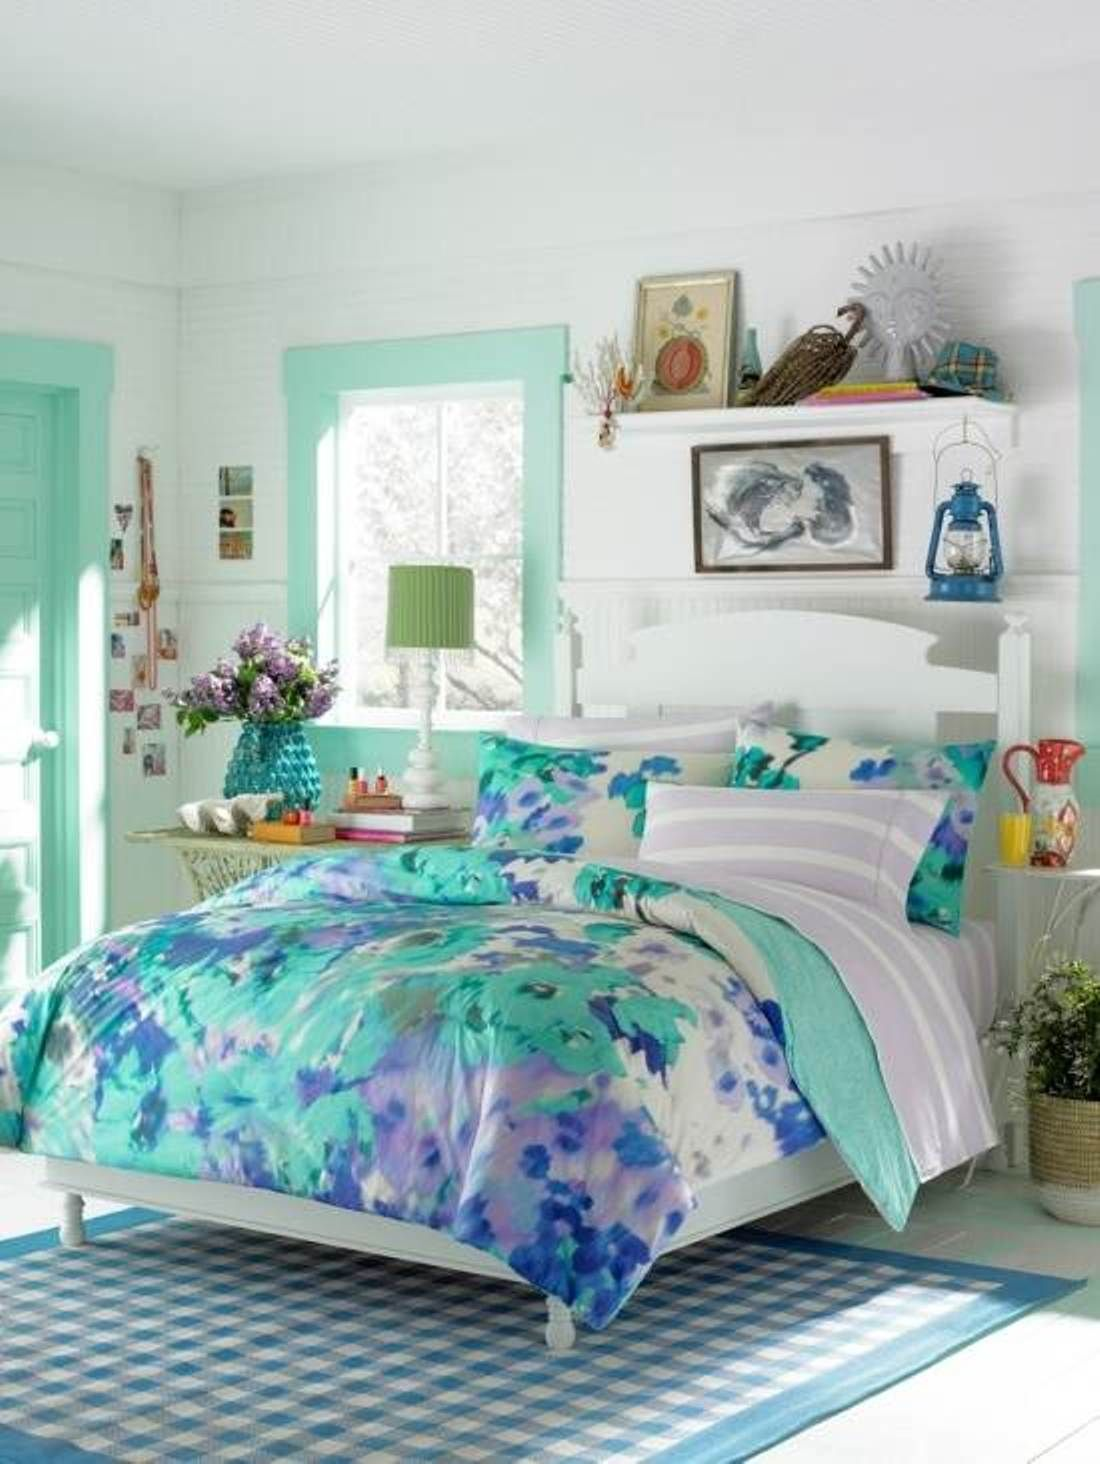 Blue bedroom decor for girls - Top Girls Bedroom Ideas Blue With Teenage Girl Bedroom Blue Flower Themes